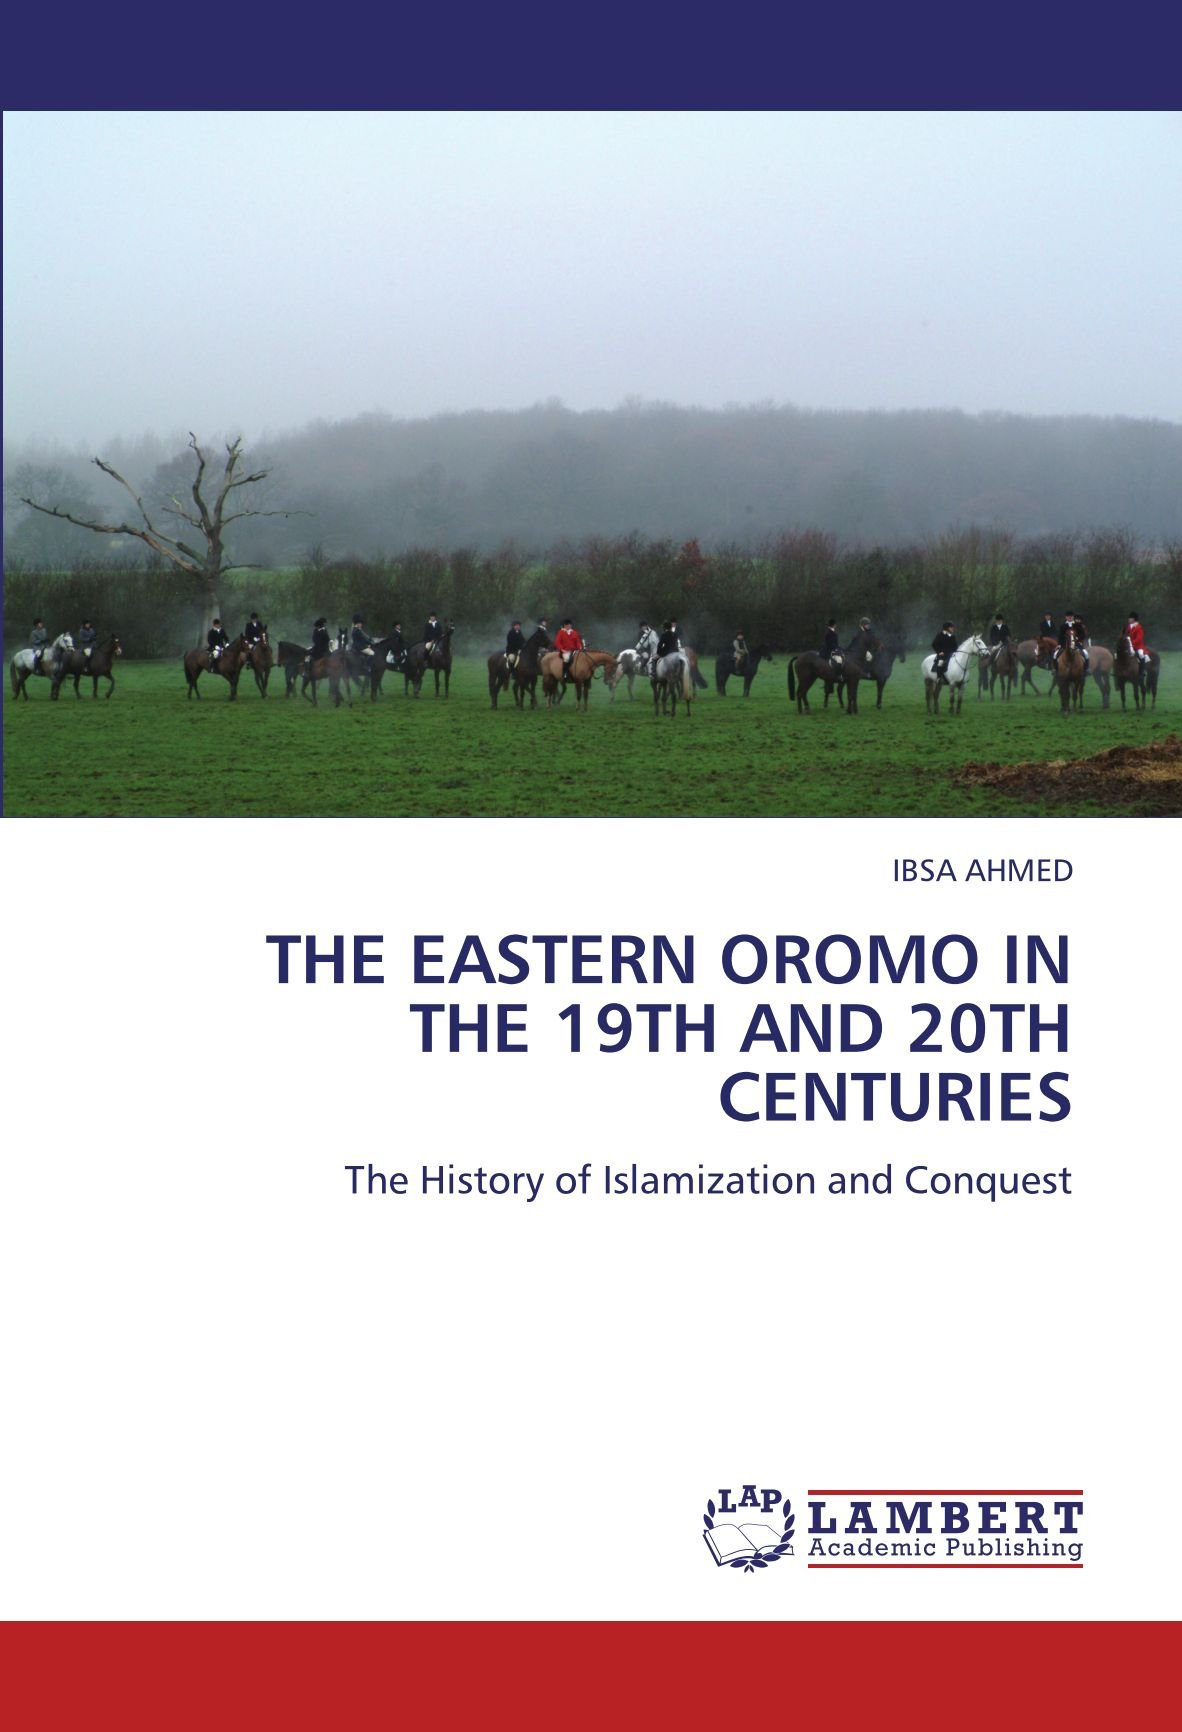 THE EASTERN OROMO IN THE 19TH AND 20TH CENTURIES: The History of Islamization and Conquest pdf